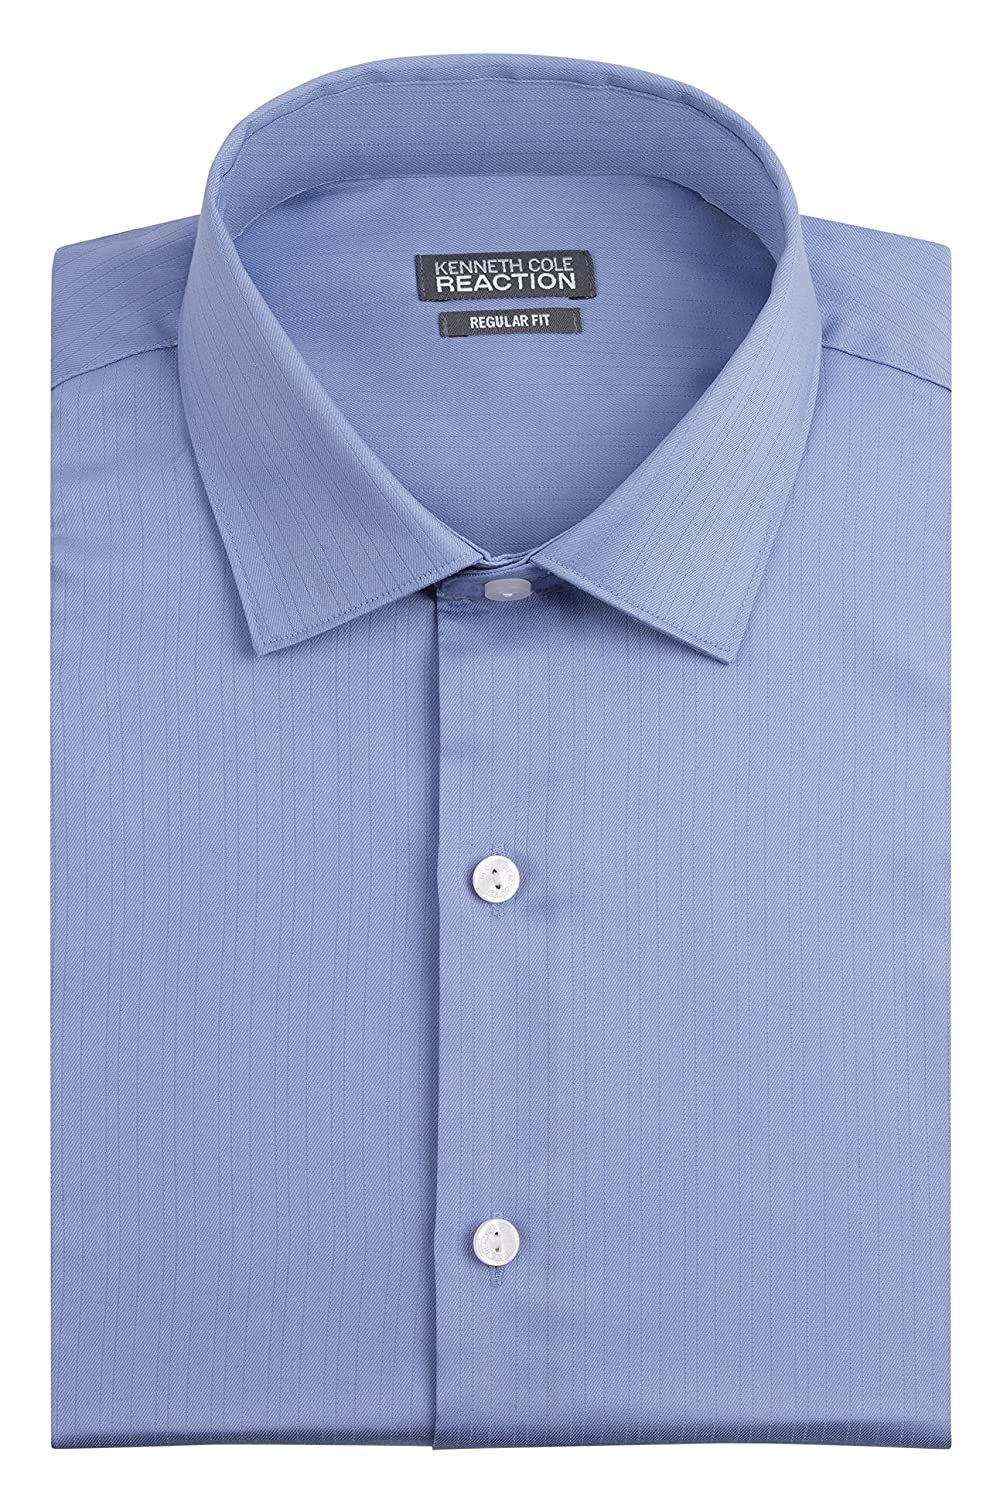 42d8d39f36d Kenneth Cole REACTION Men s Textured Regular Fit Solid Spread Collar Dress  Shirt at Amazon Men s Clothing store